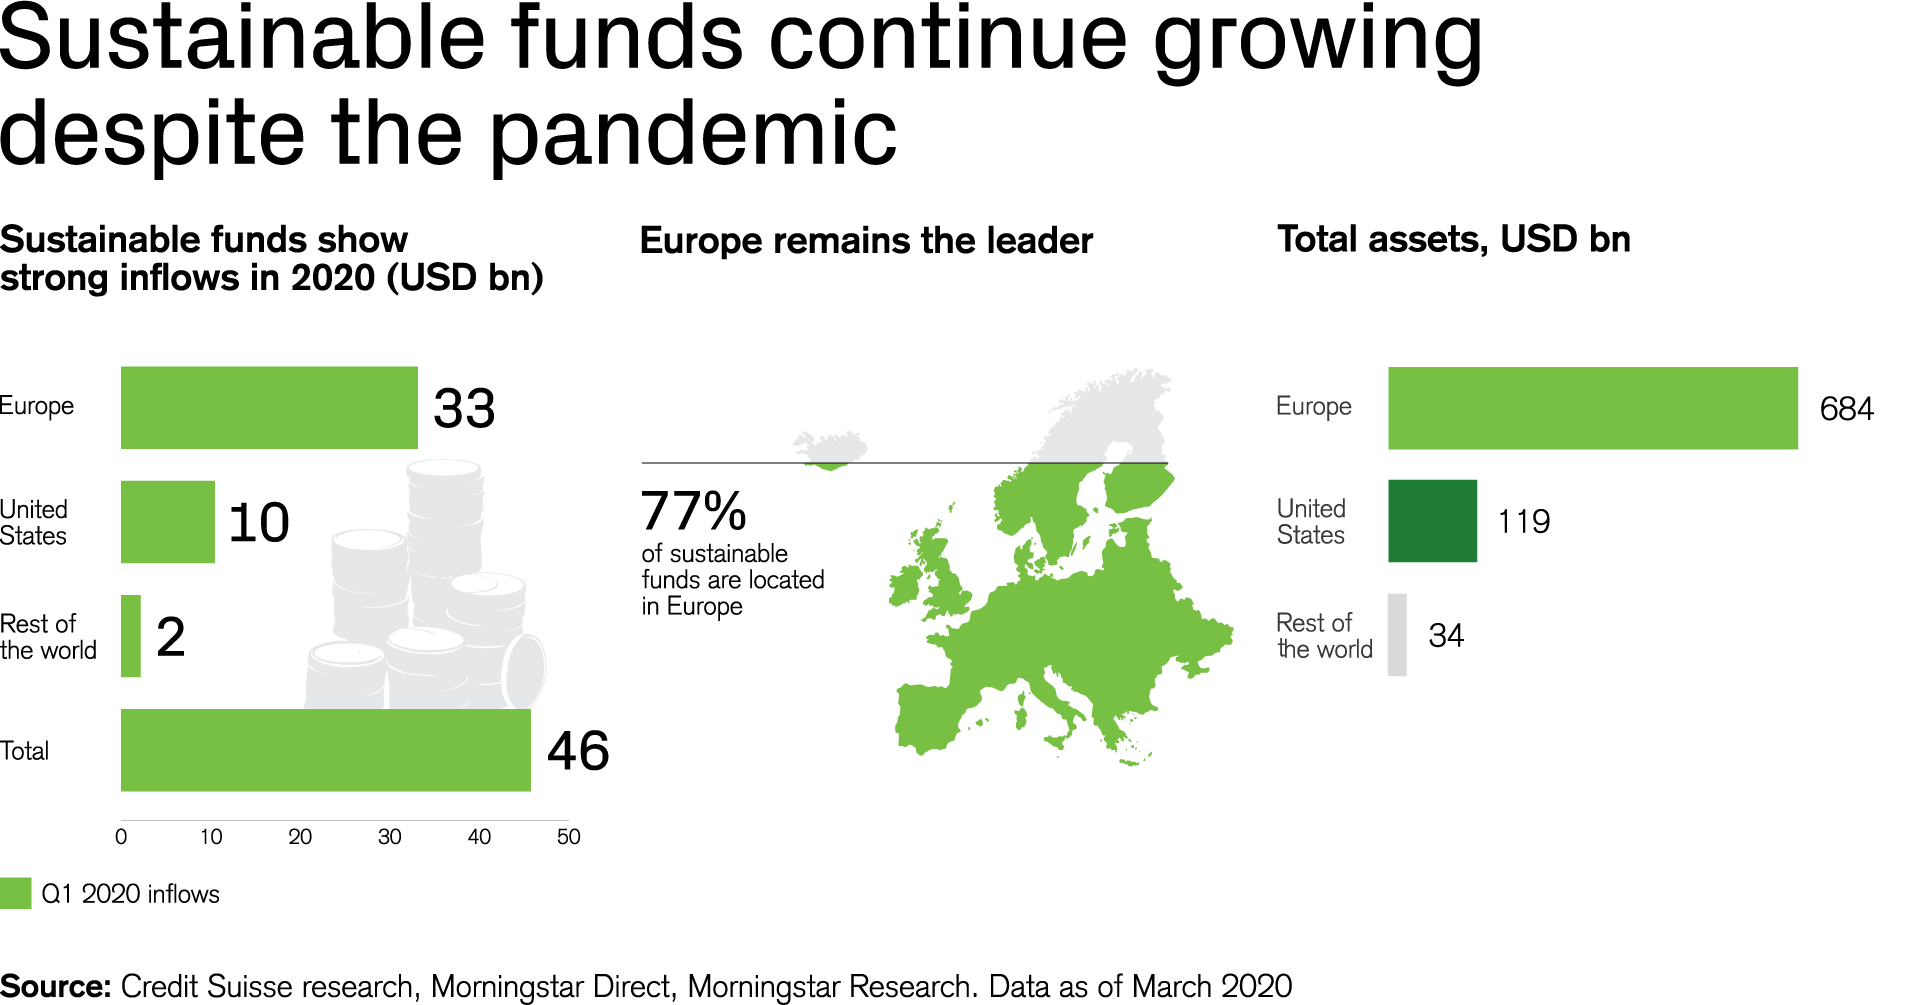 Sustainable funds continue growing despite the pandemic